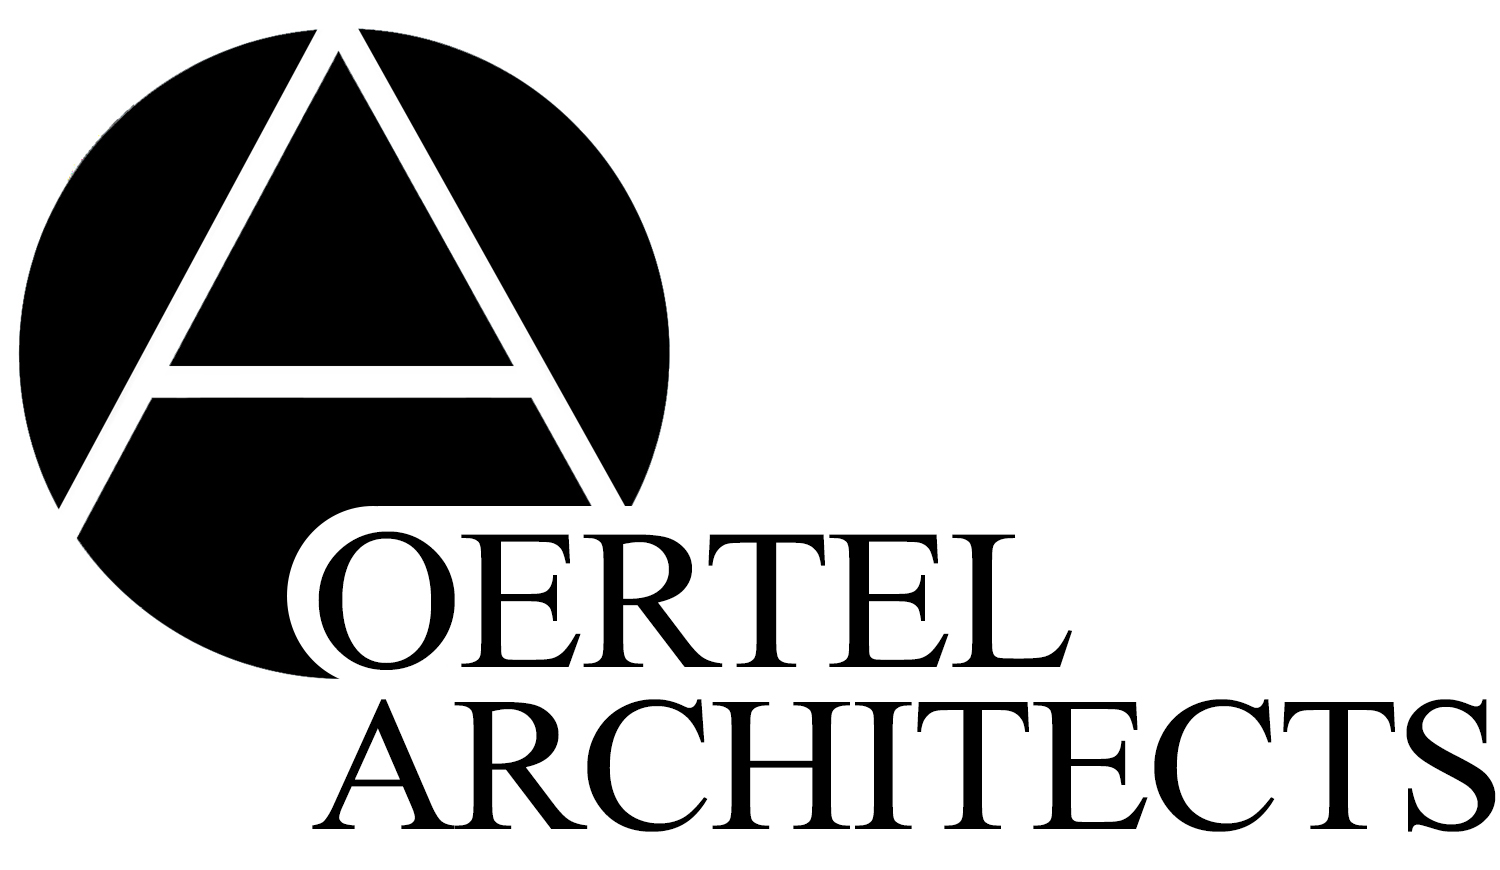 OERTEL ARCHITECTS, LTD.